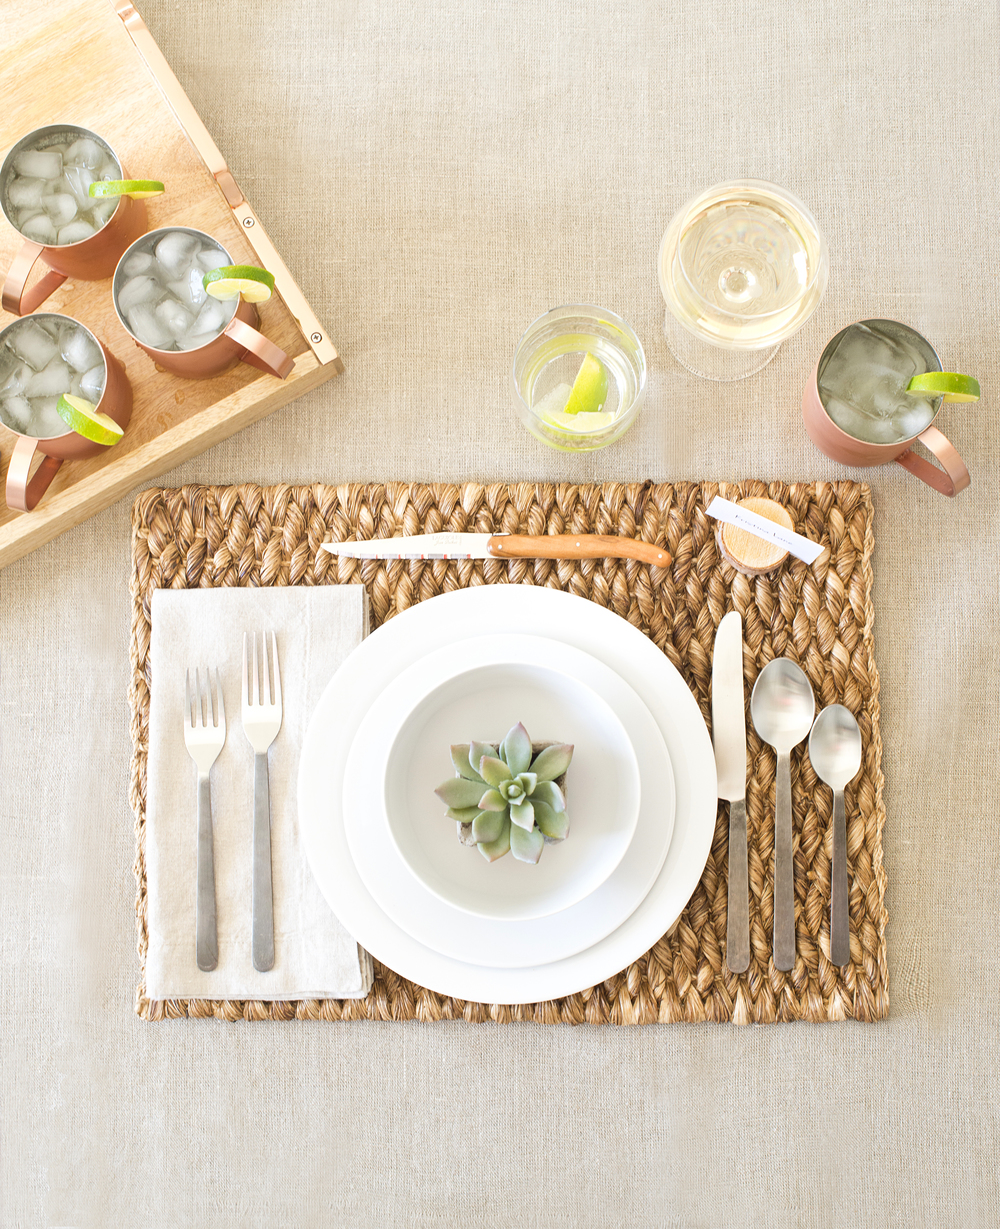 Crate & Barrel's Aspen Dinnerware 3 Ways- Rustic Table Setting